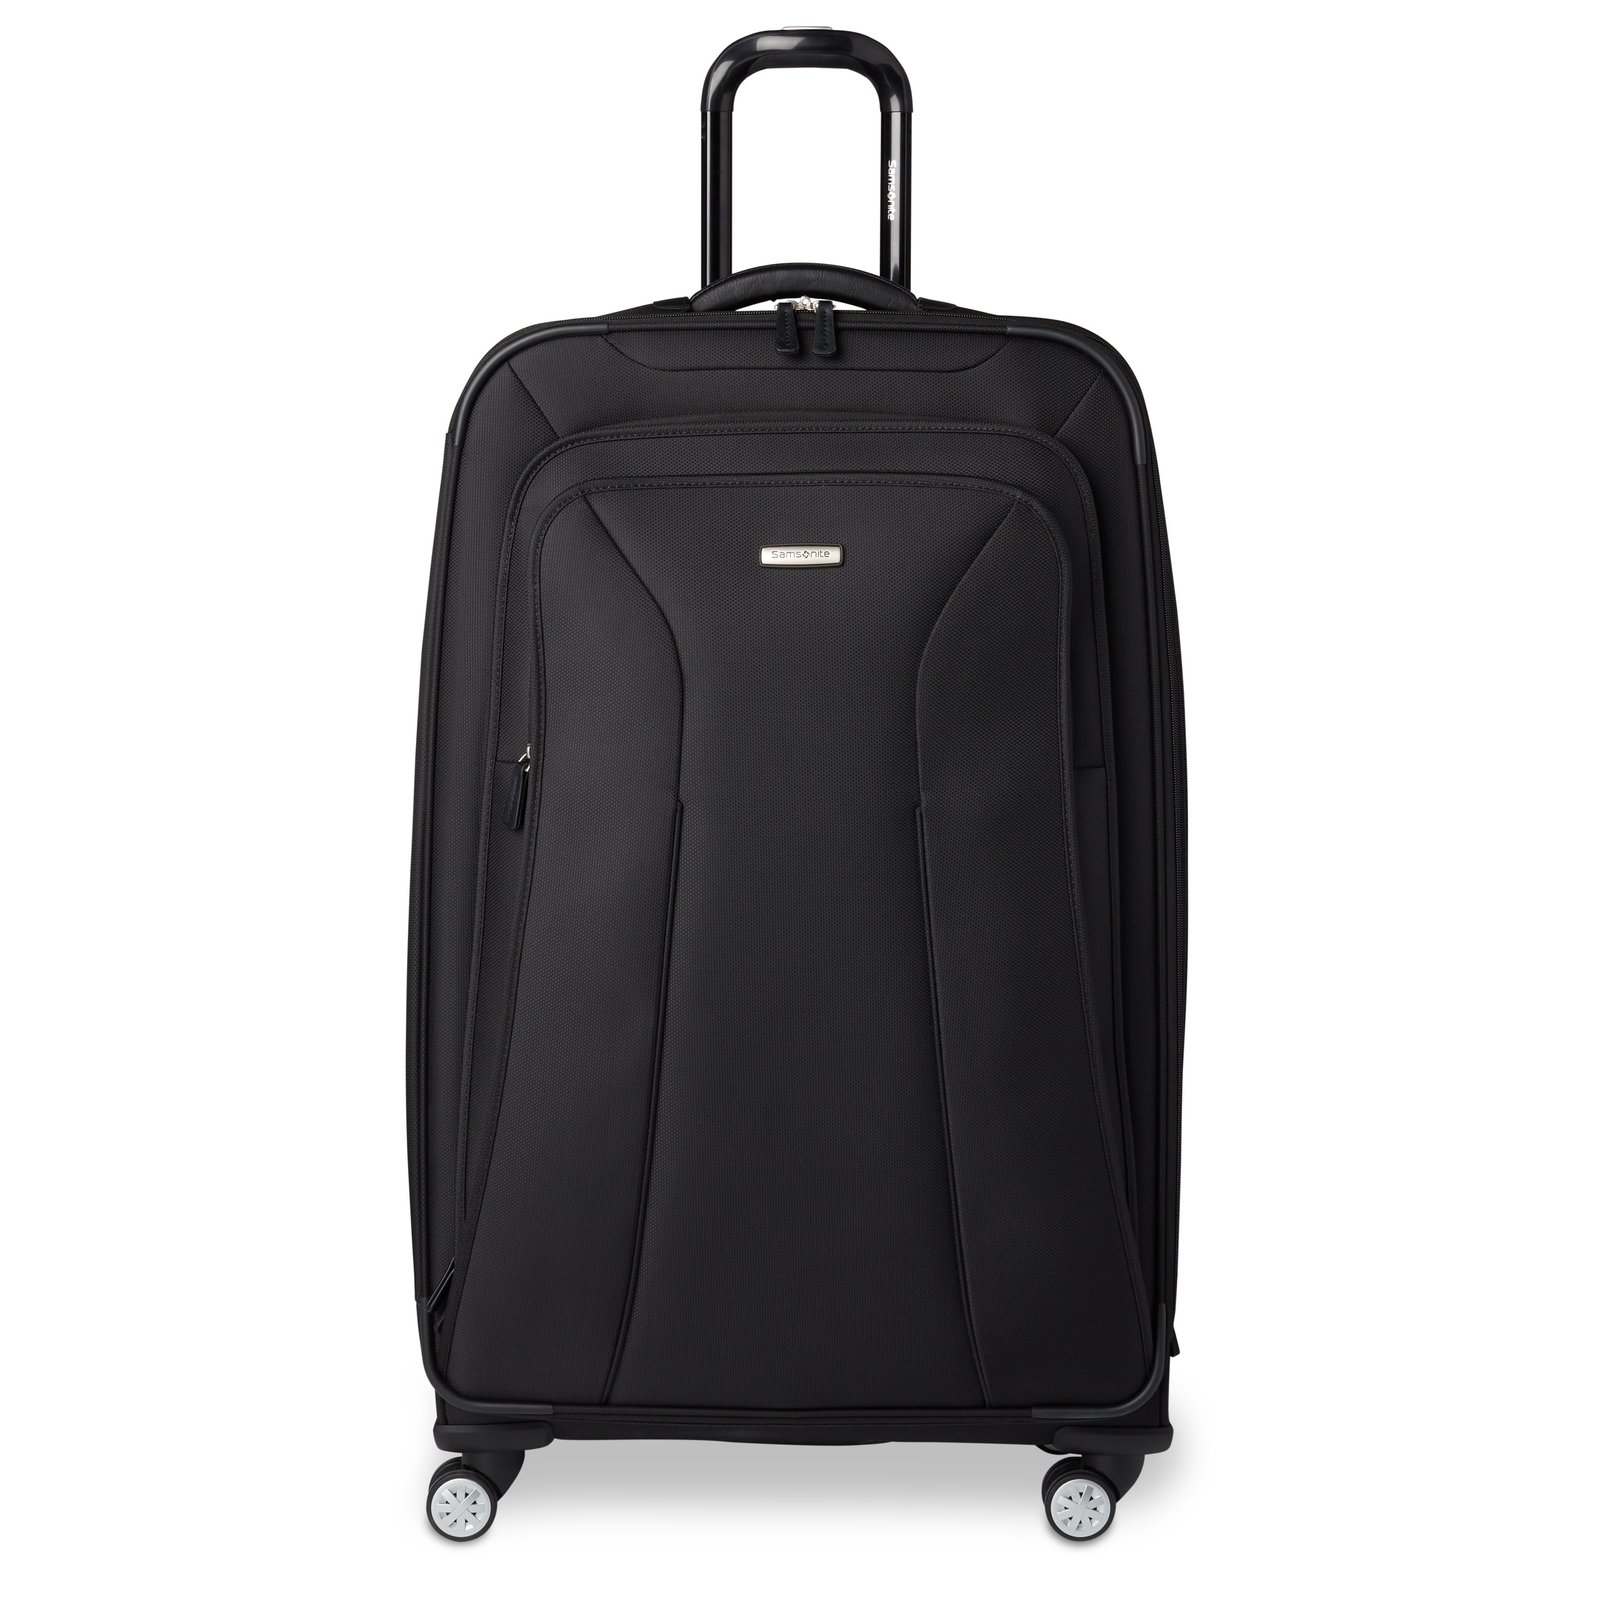 Amsonite hyperspace xlt 30 inch expandable spinner suitcase dfd9b1c0 a1b2 4534 a39b 27f422933754